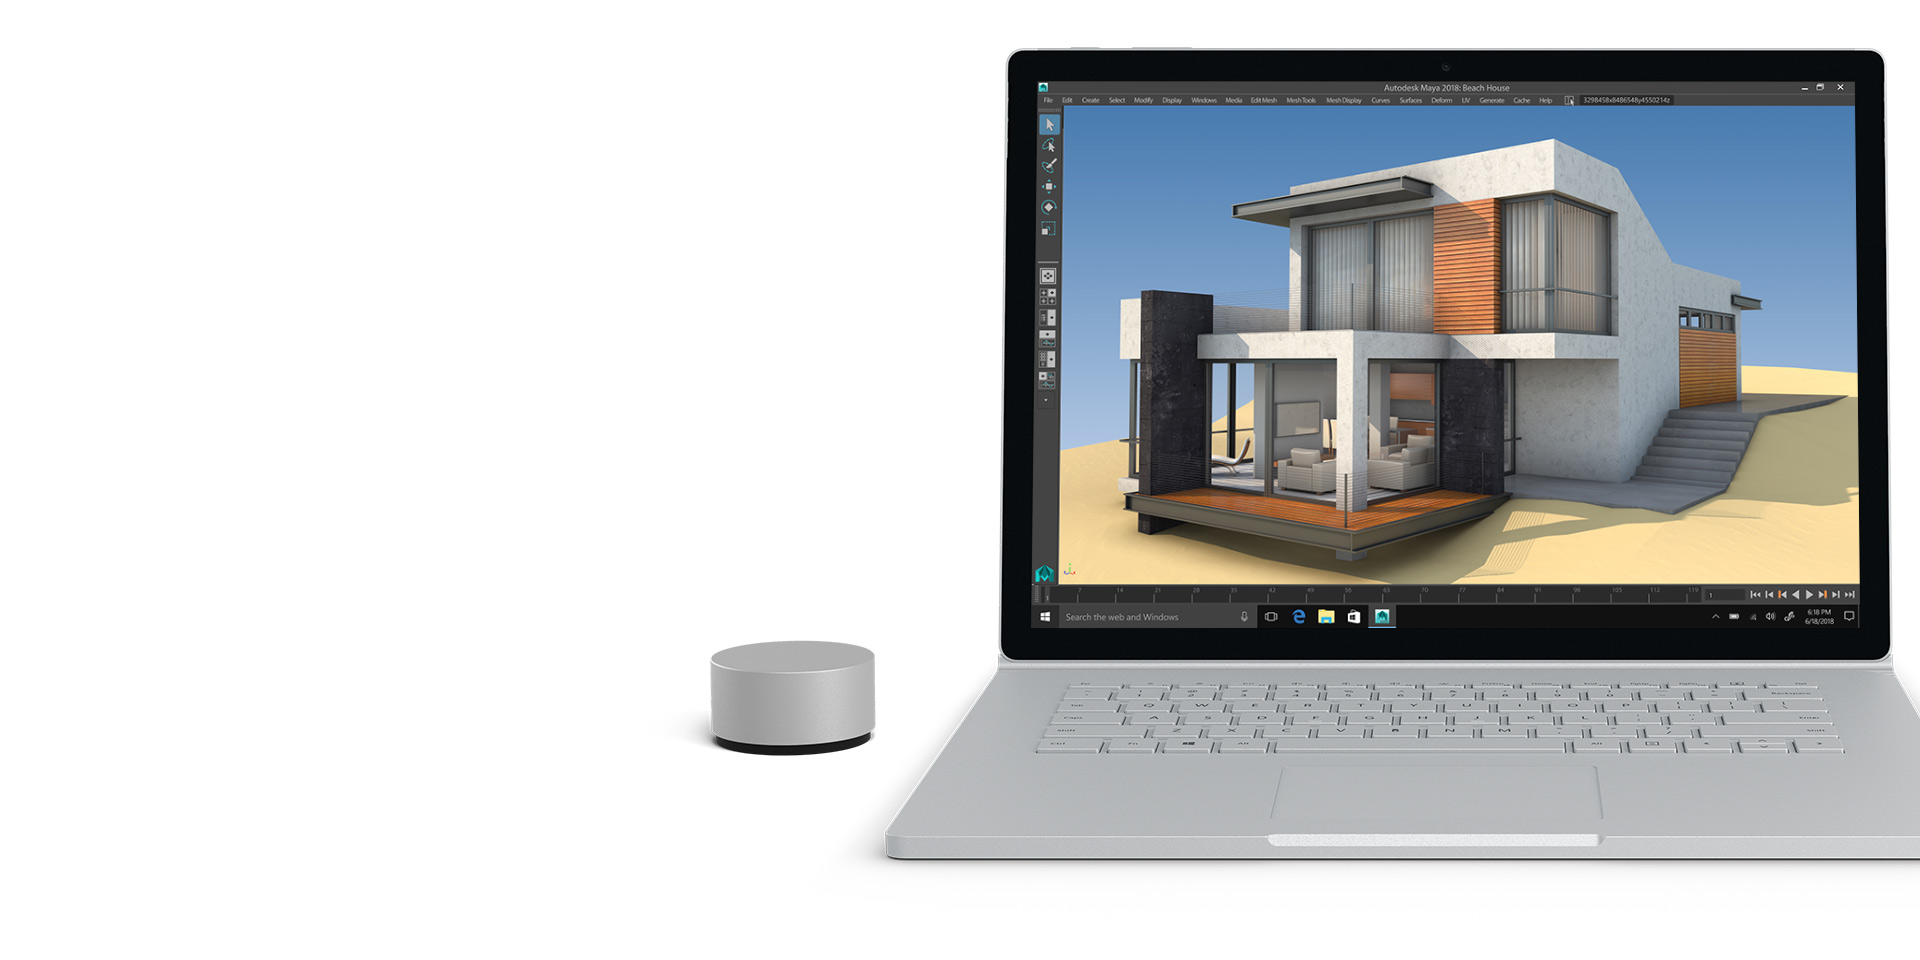 Surface Book 2-Display mit geöffnetem Autodesk Maya